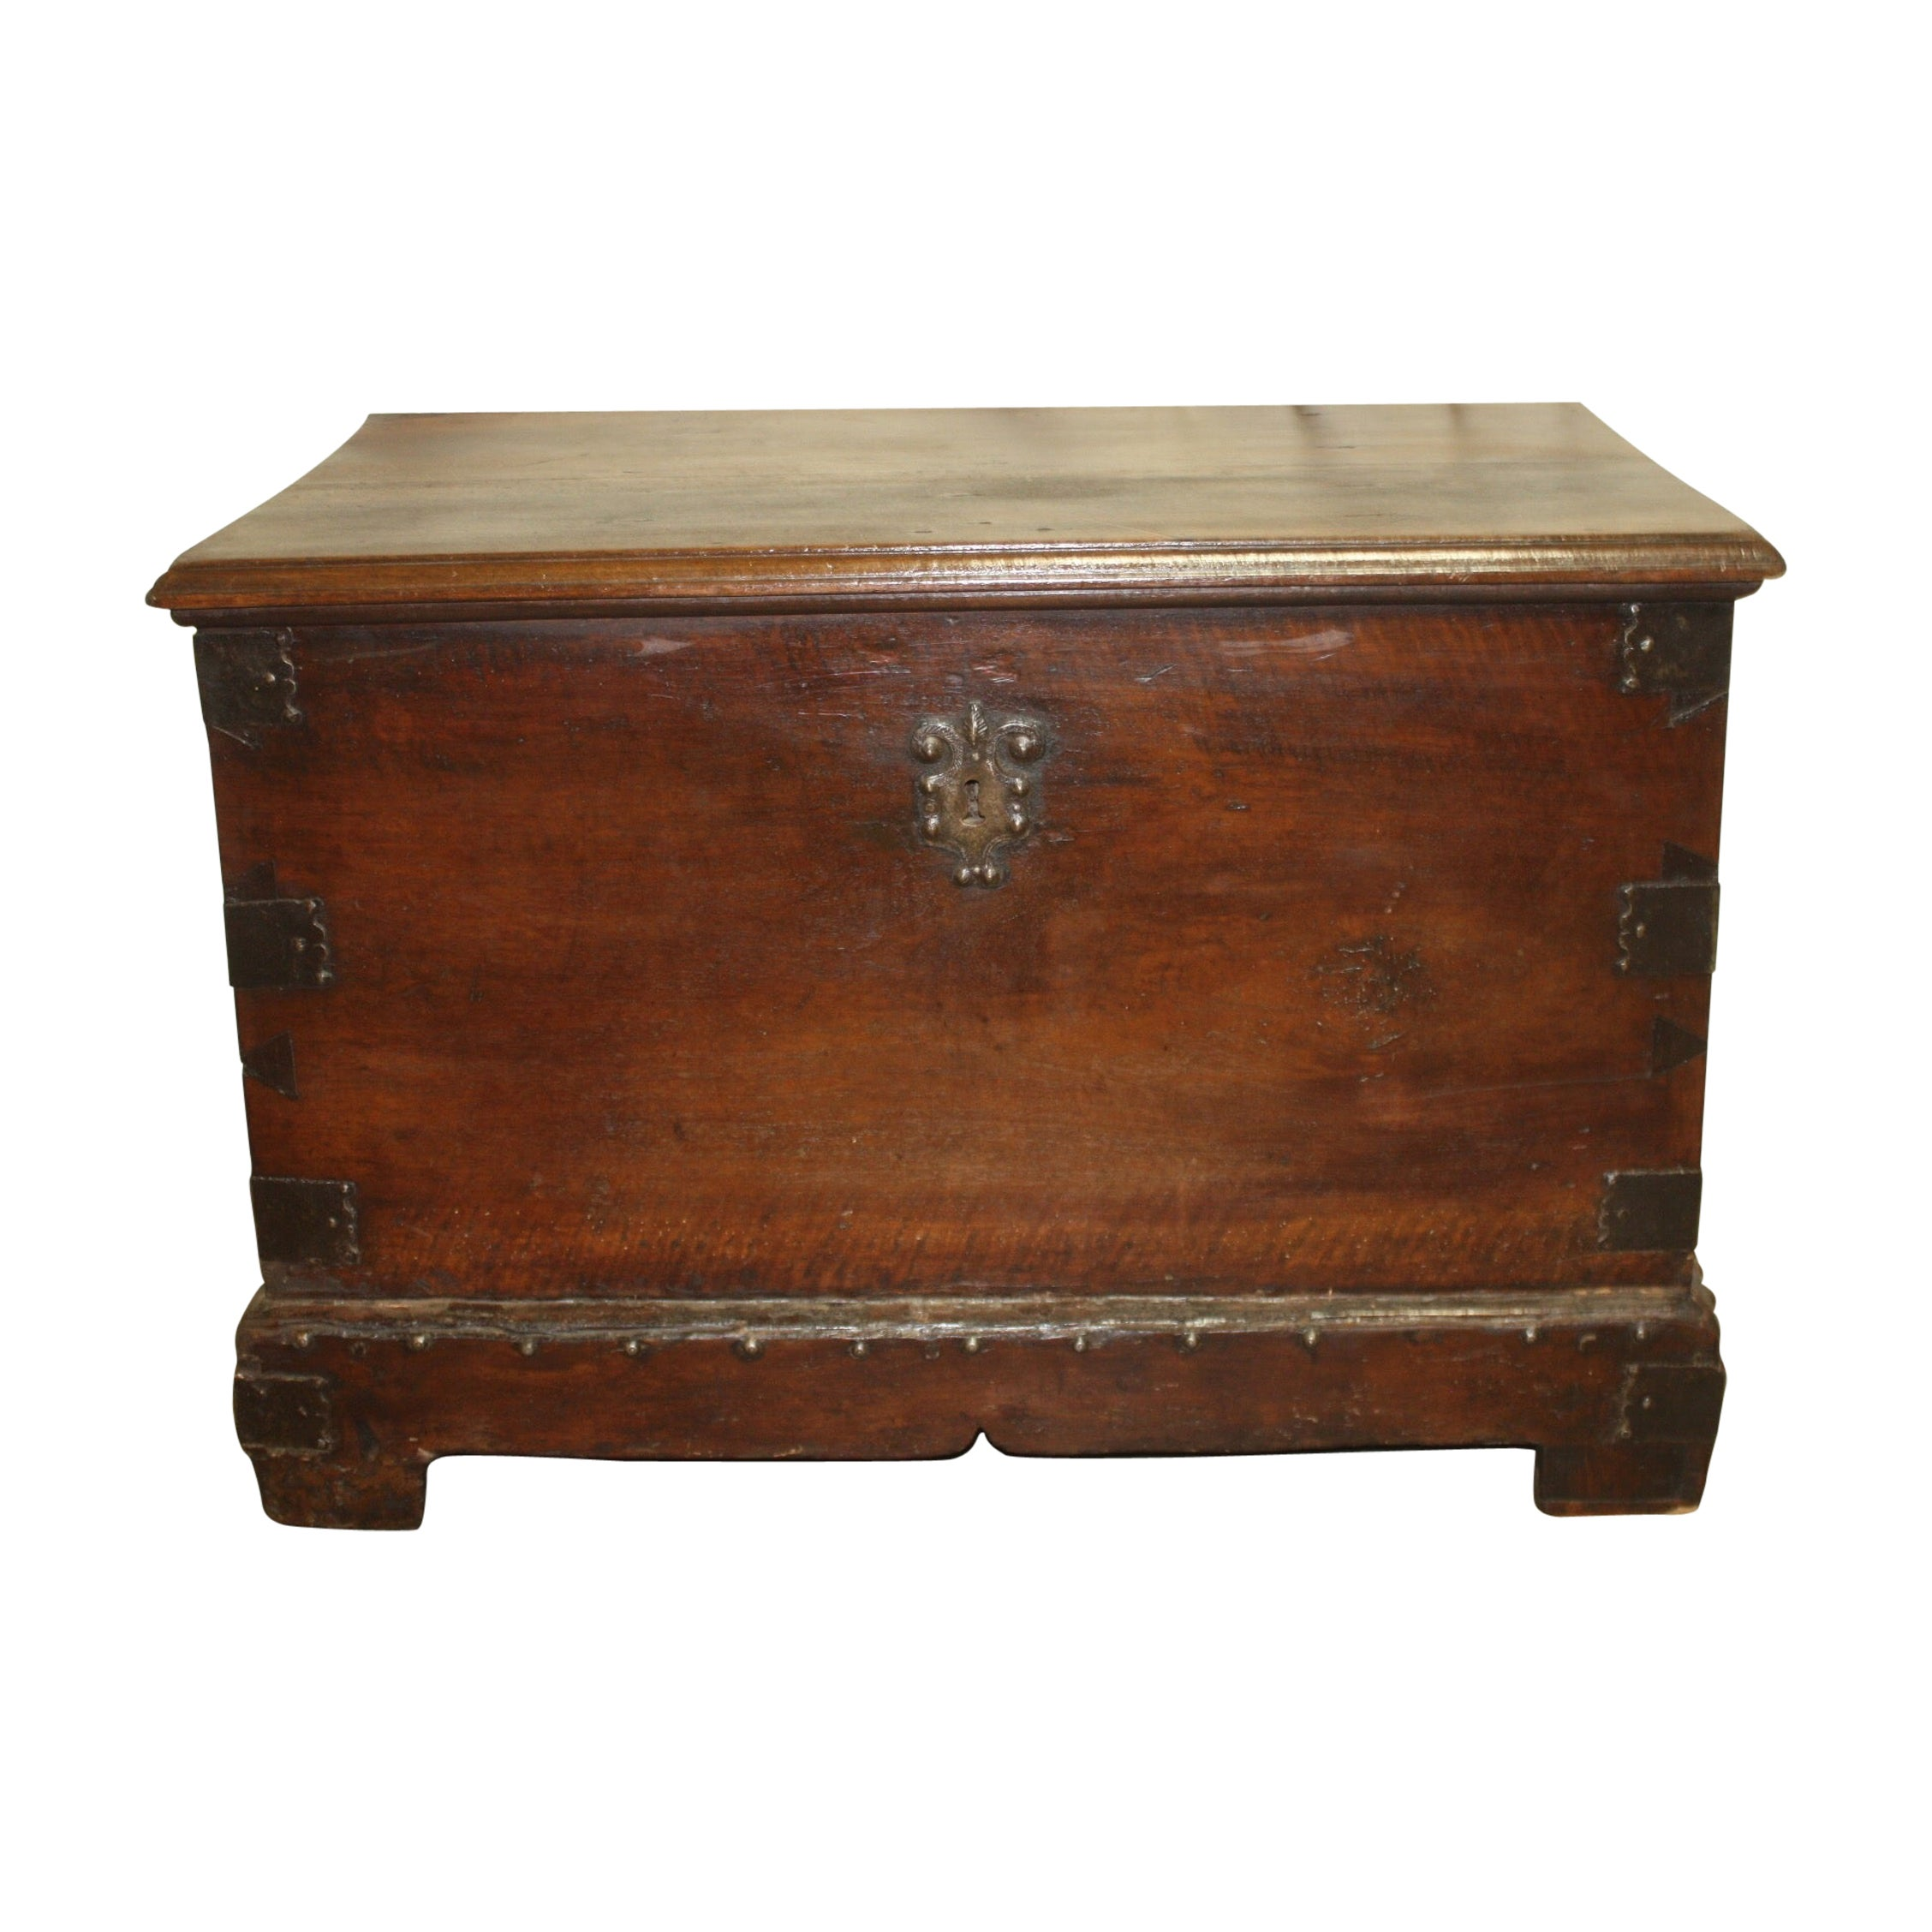 Superbe 17th Century French Blanket Chest or Trunk